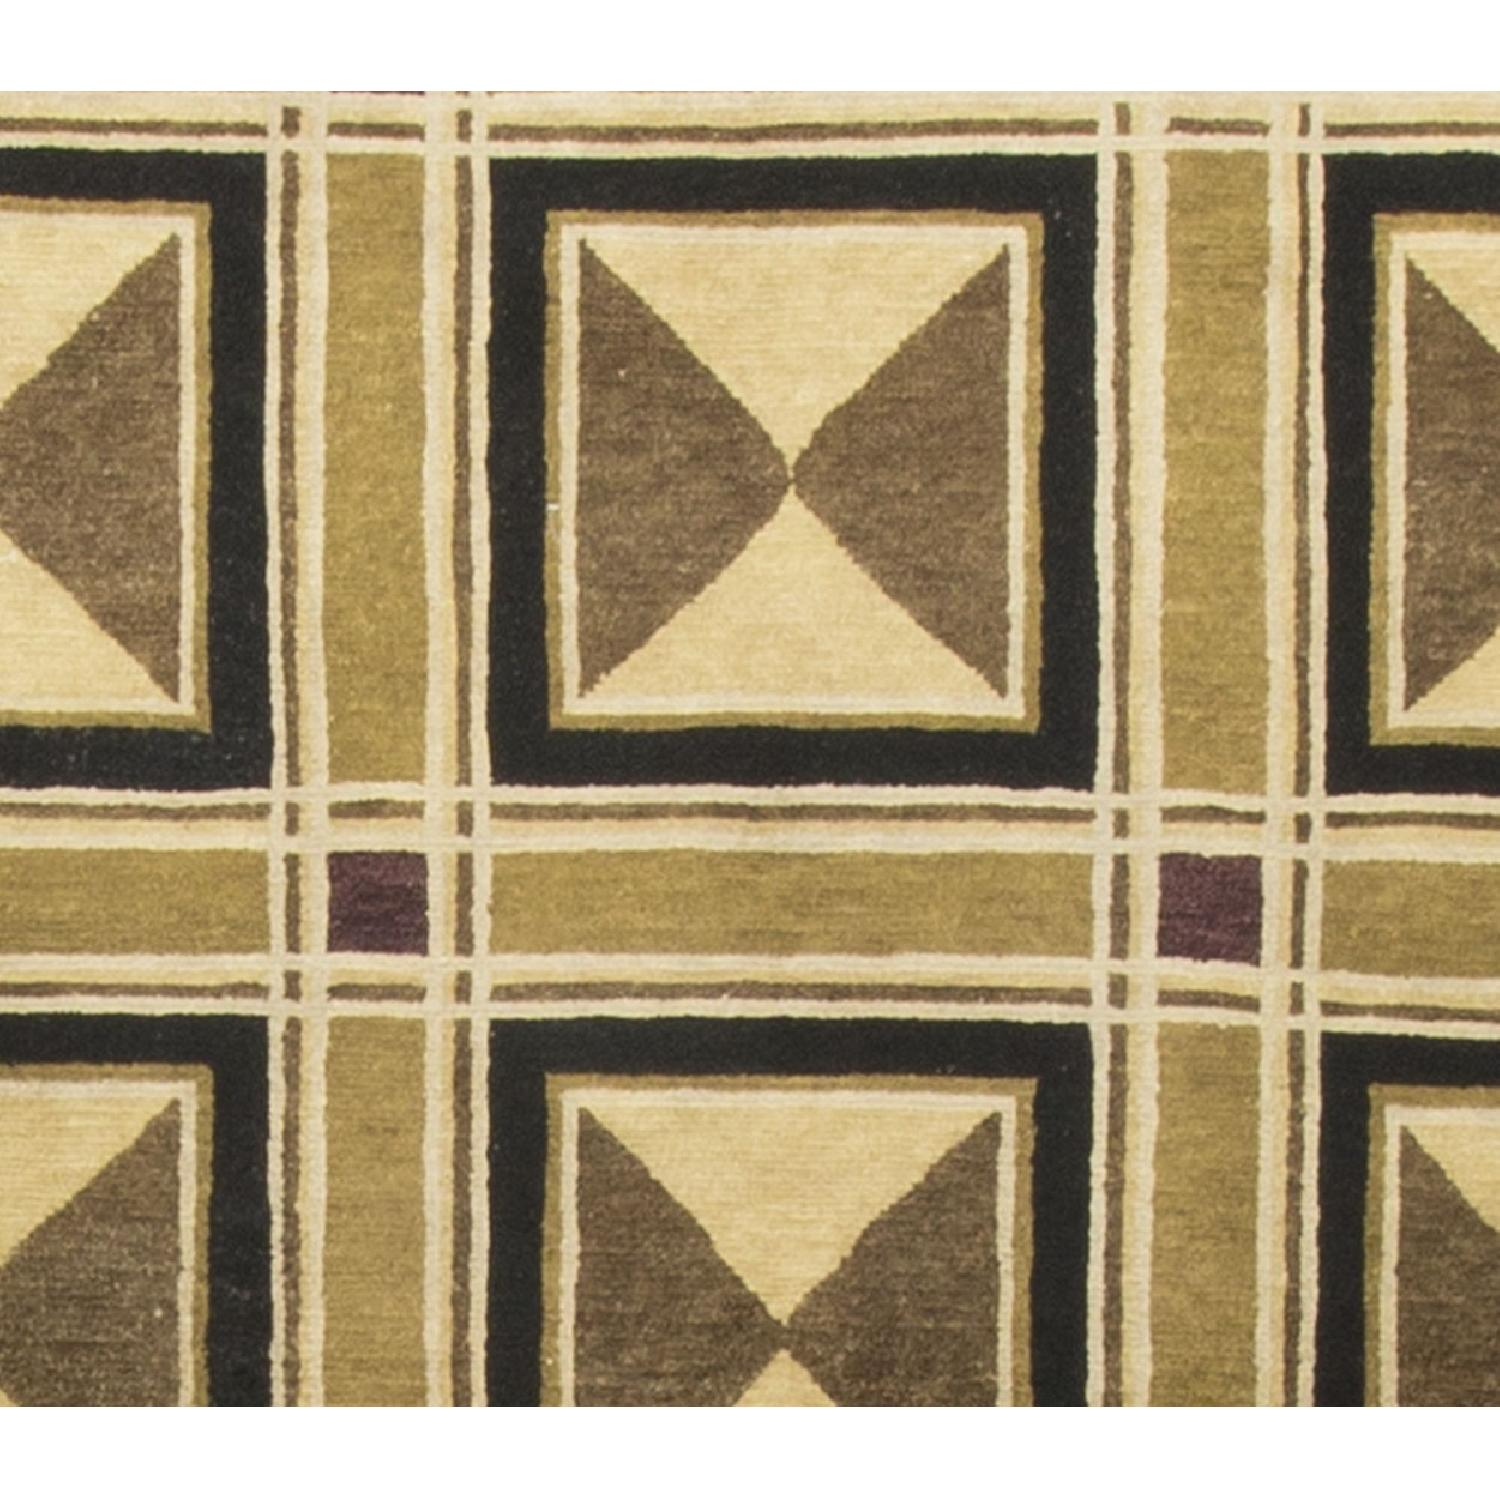 Modern Contemporary Hand Knotted Wool Rug in Black/Beige/Brown - image-2